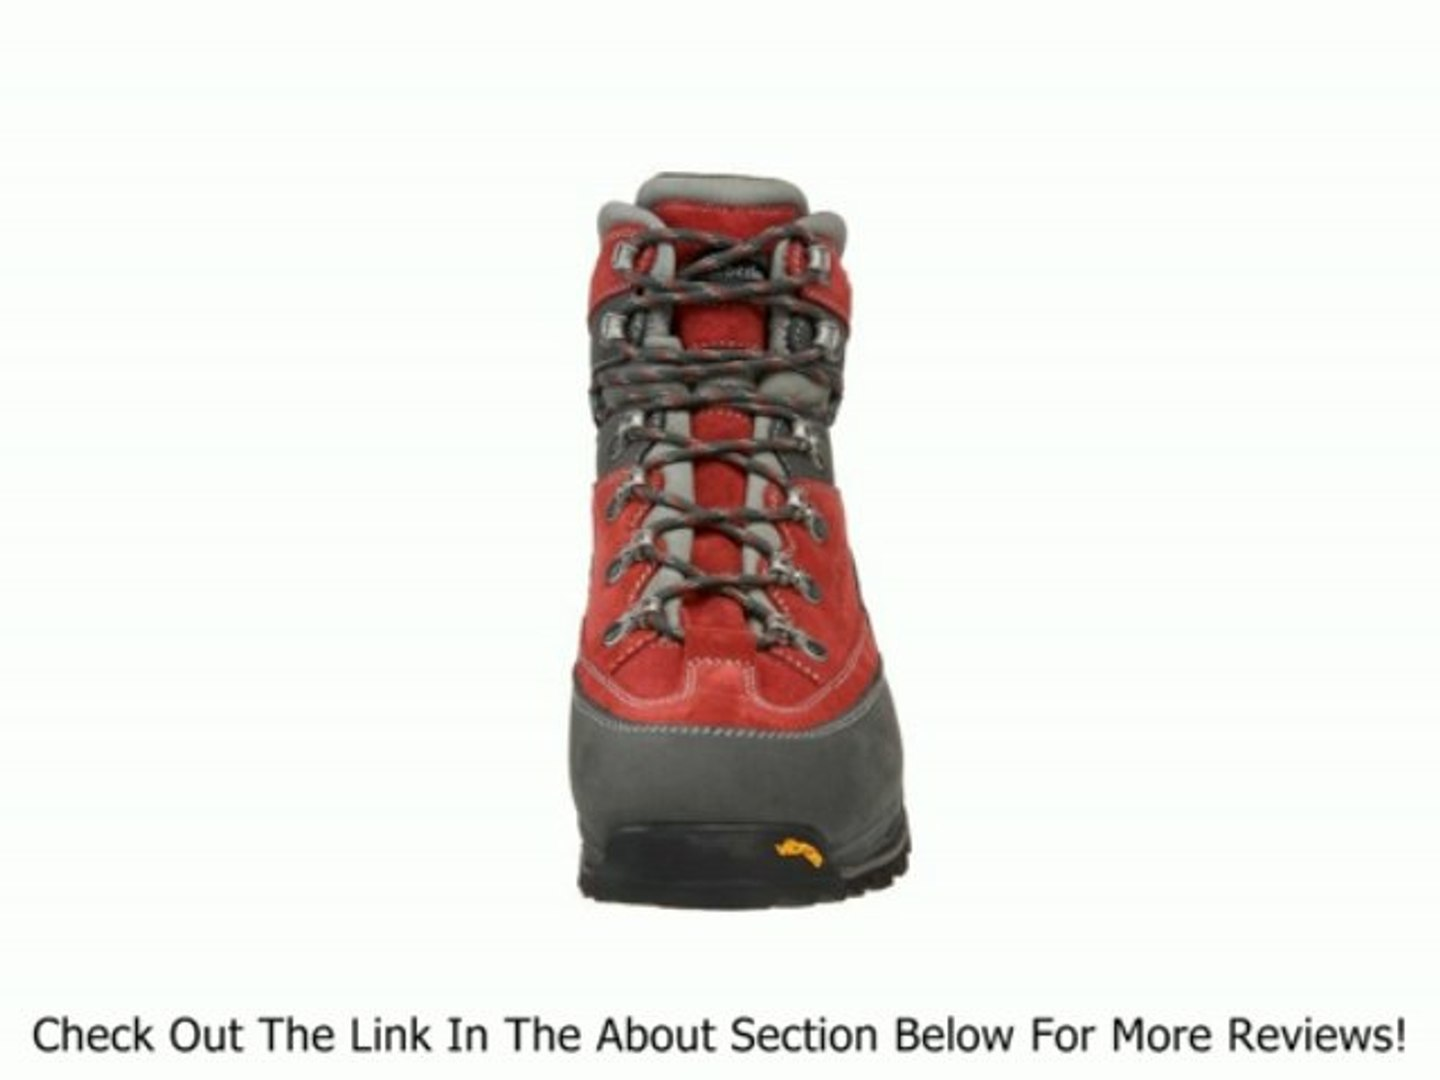 9db86a99650 Zamberlan Men's 760 Steep Gt Hiking Boot Review